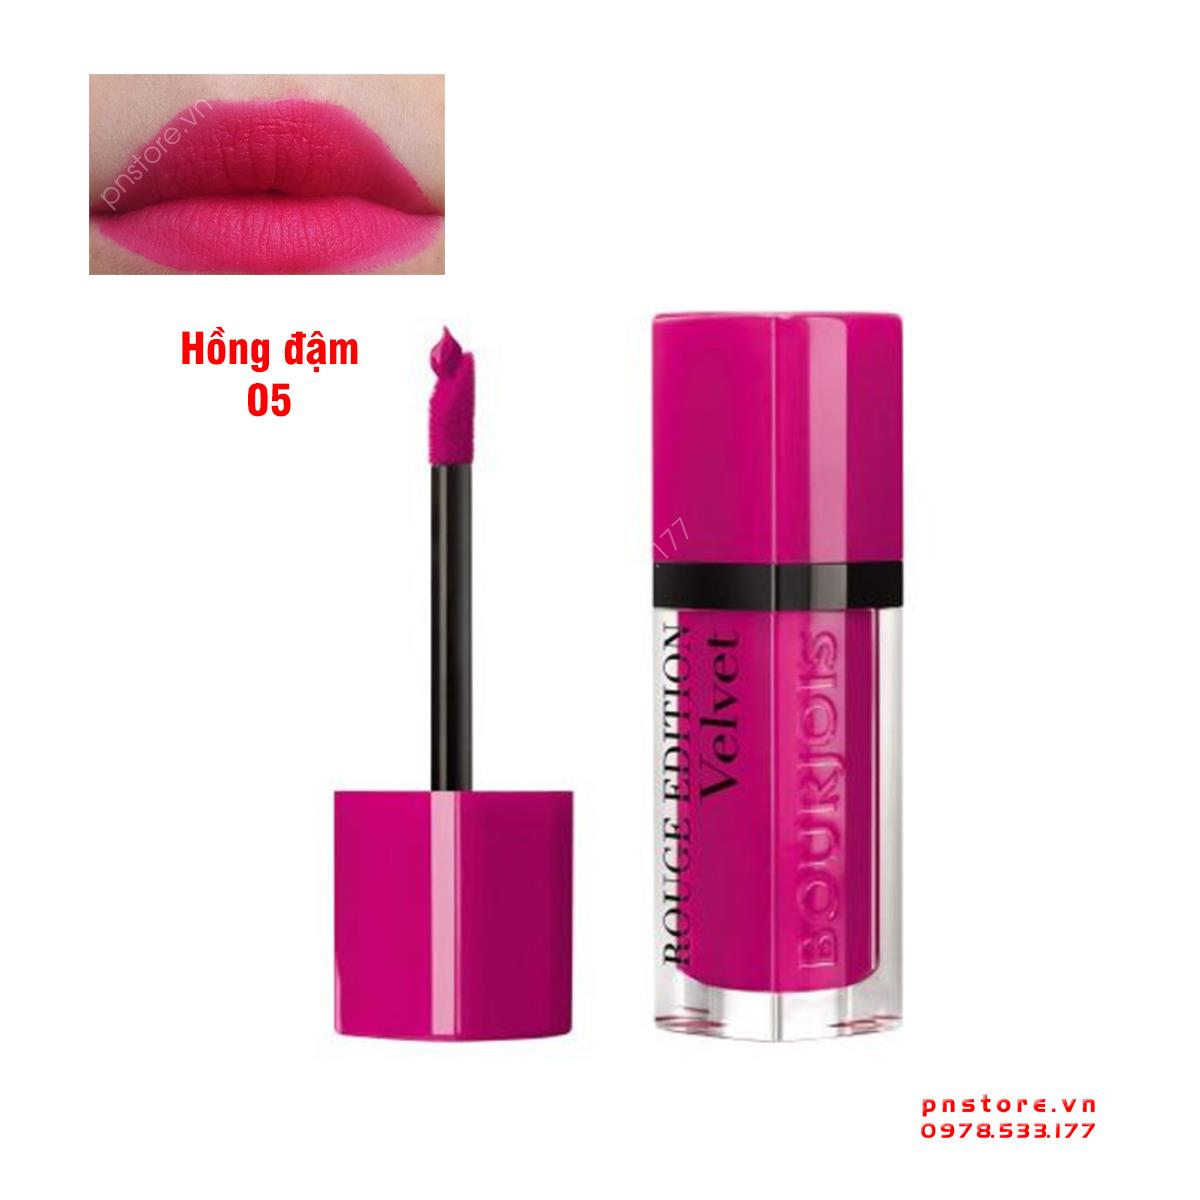 son-bourjois-velvet-05-ole-flamingo-hong-dam-chinh-hang-pn96529